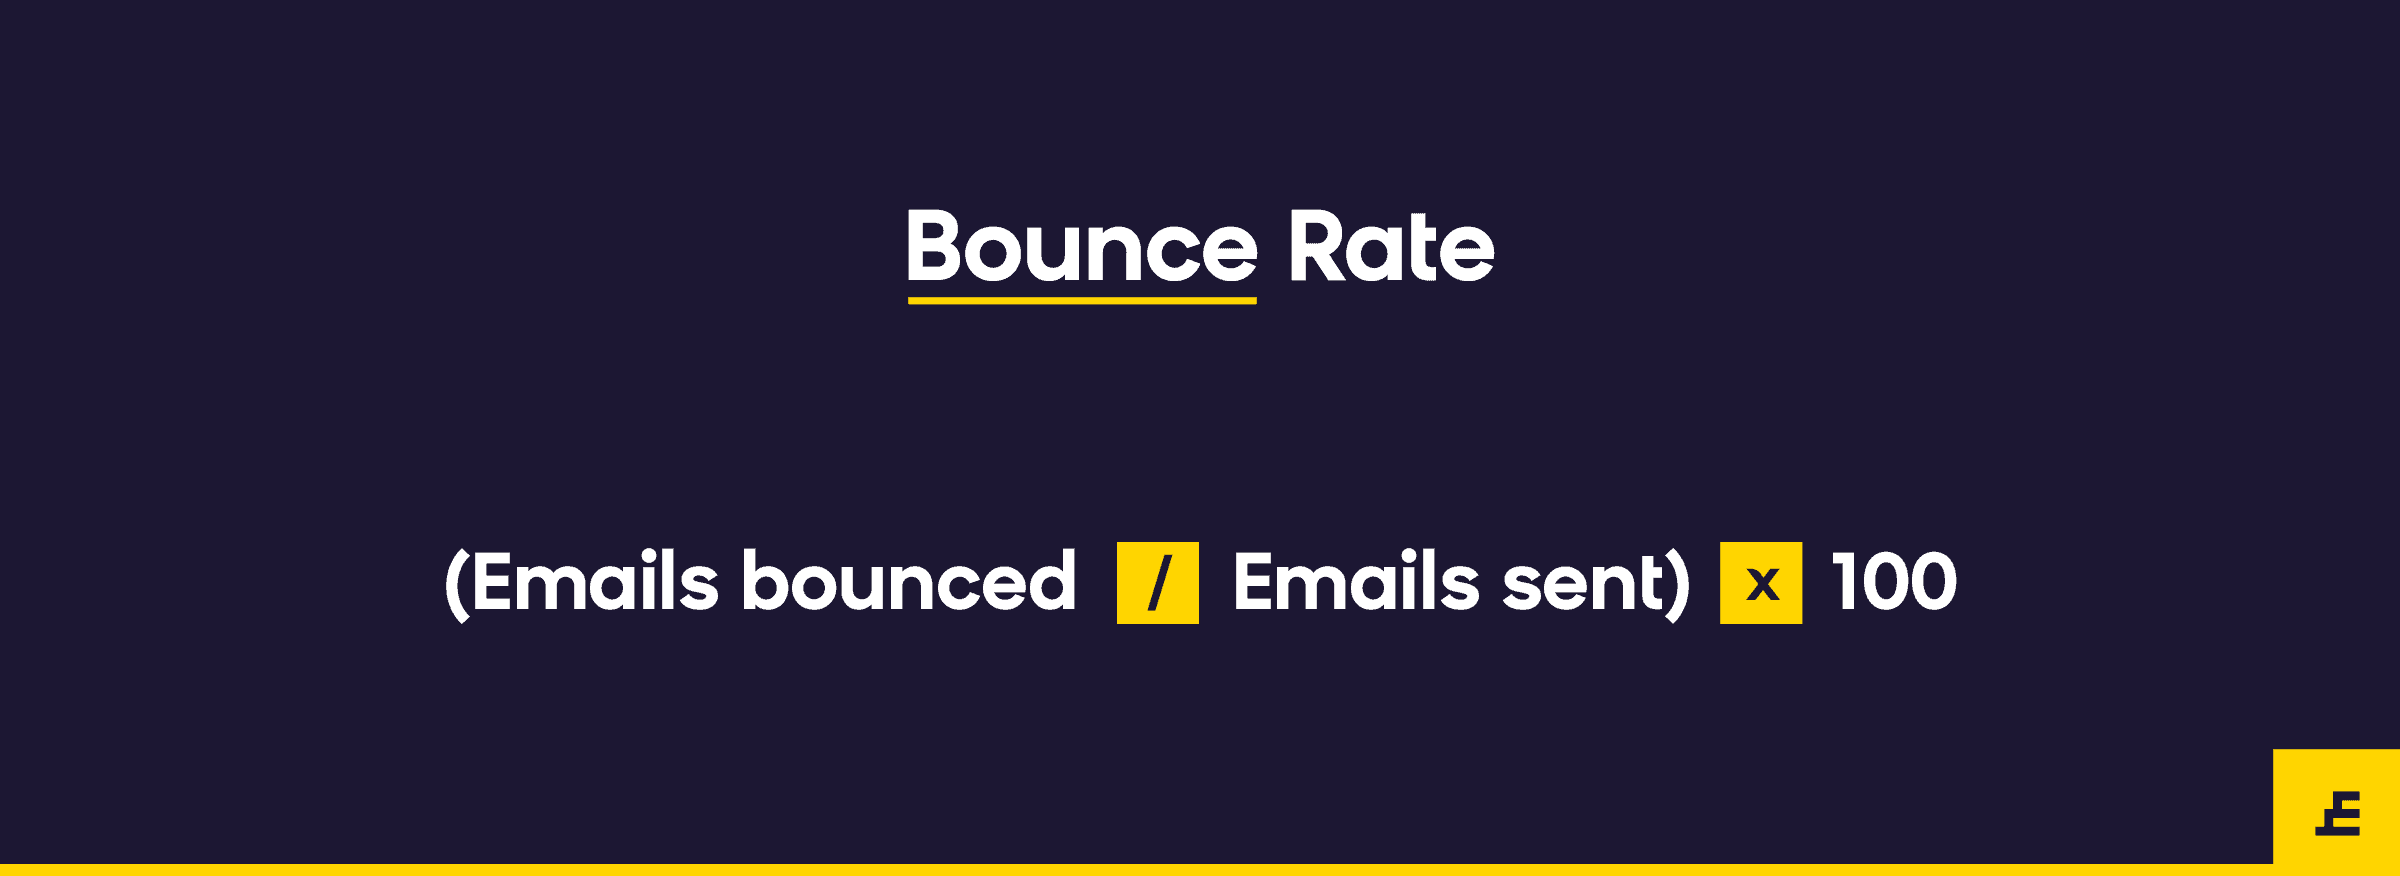 email marketing metric - bounce rate